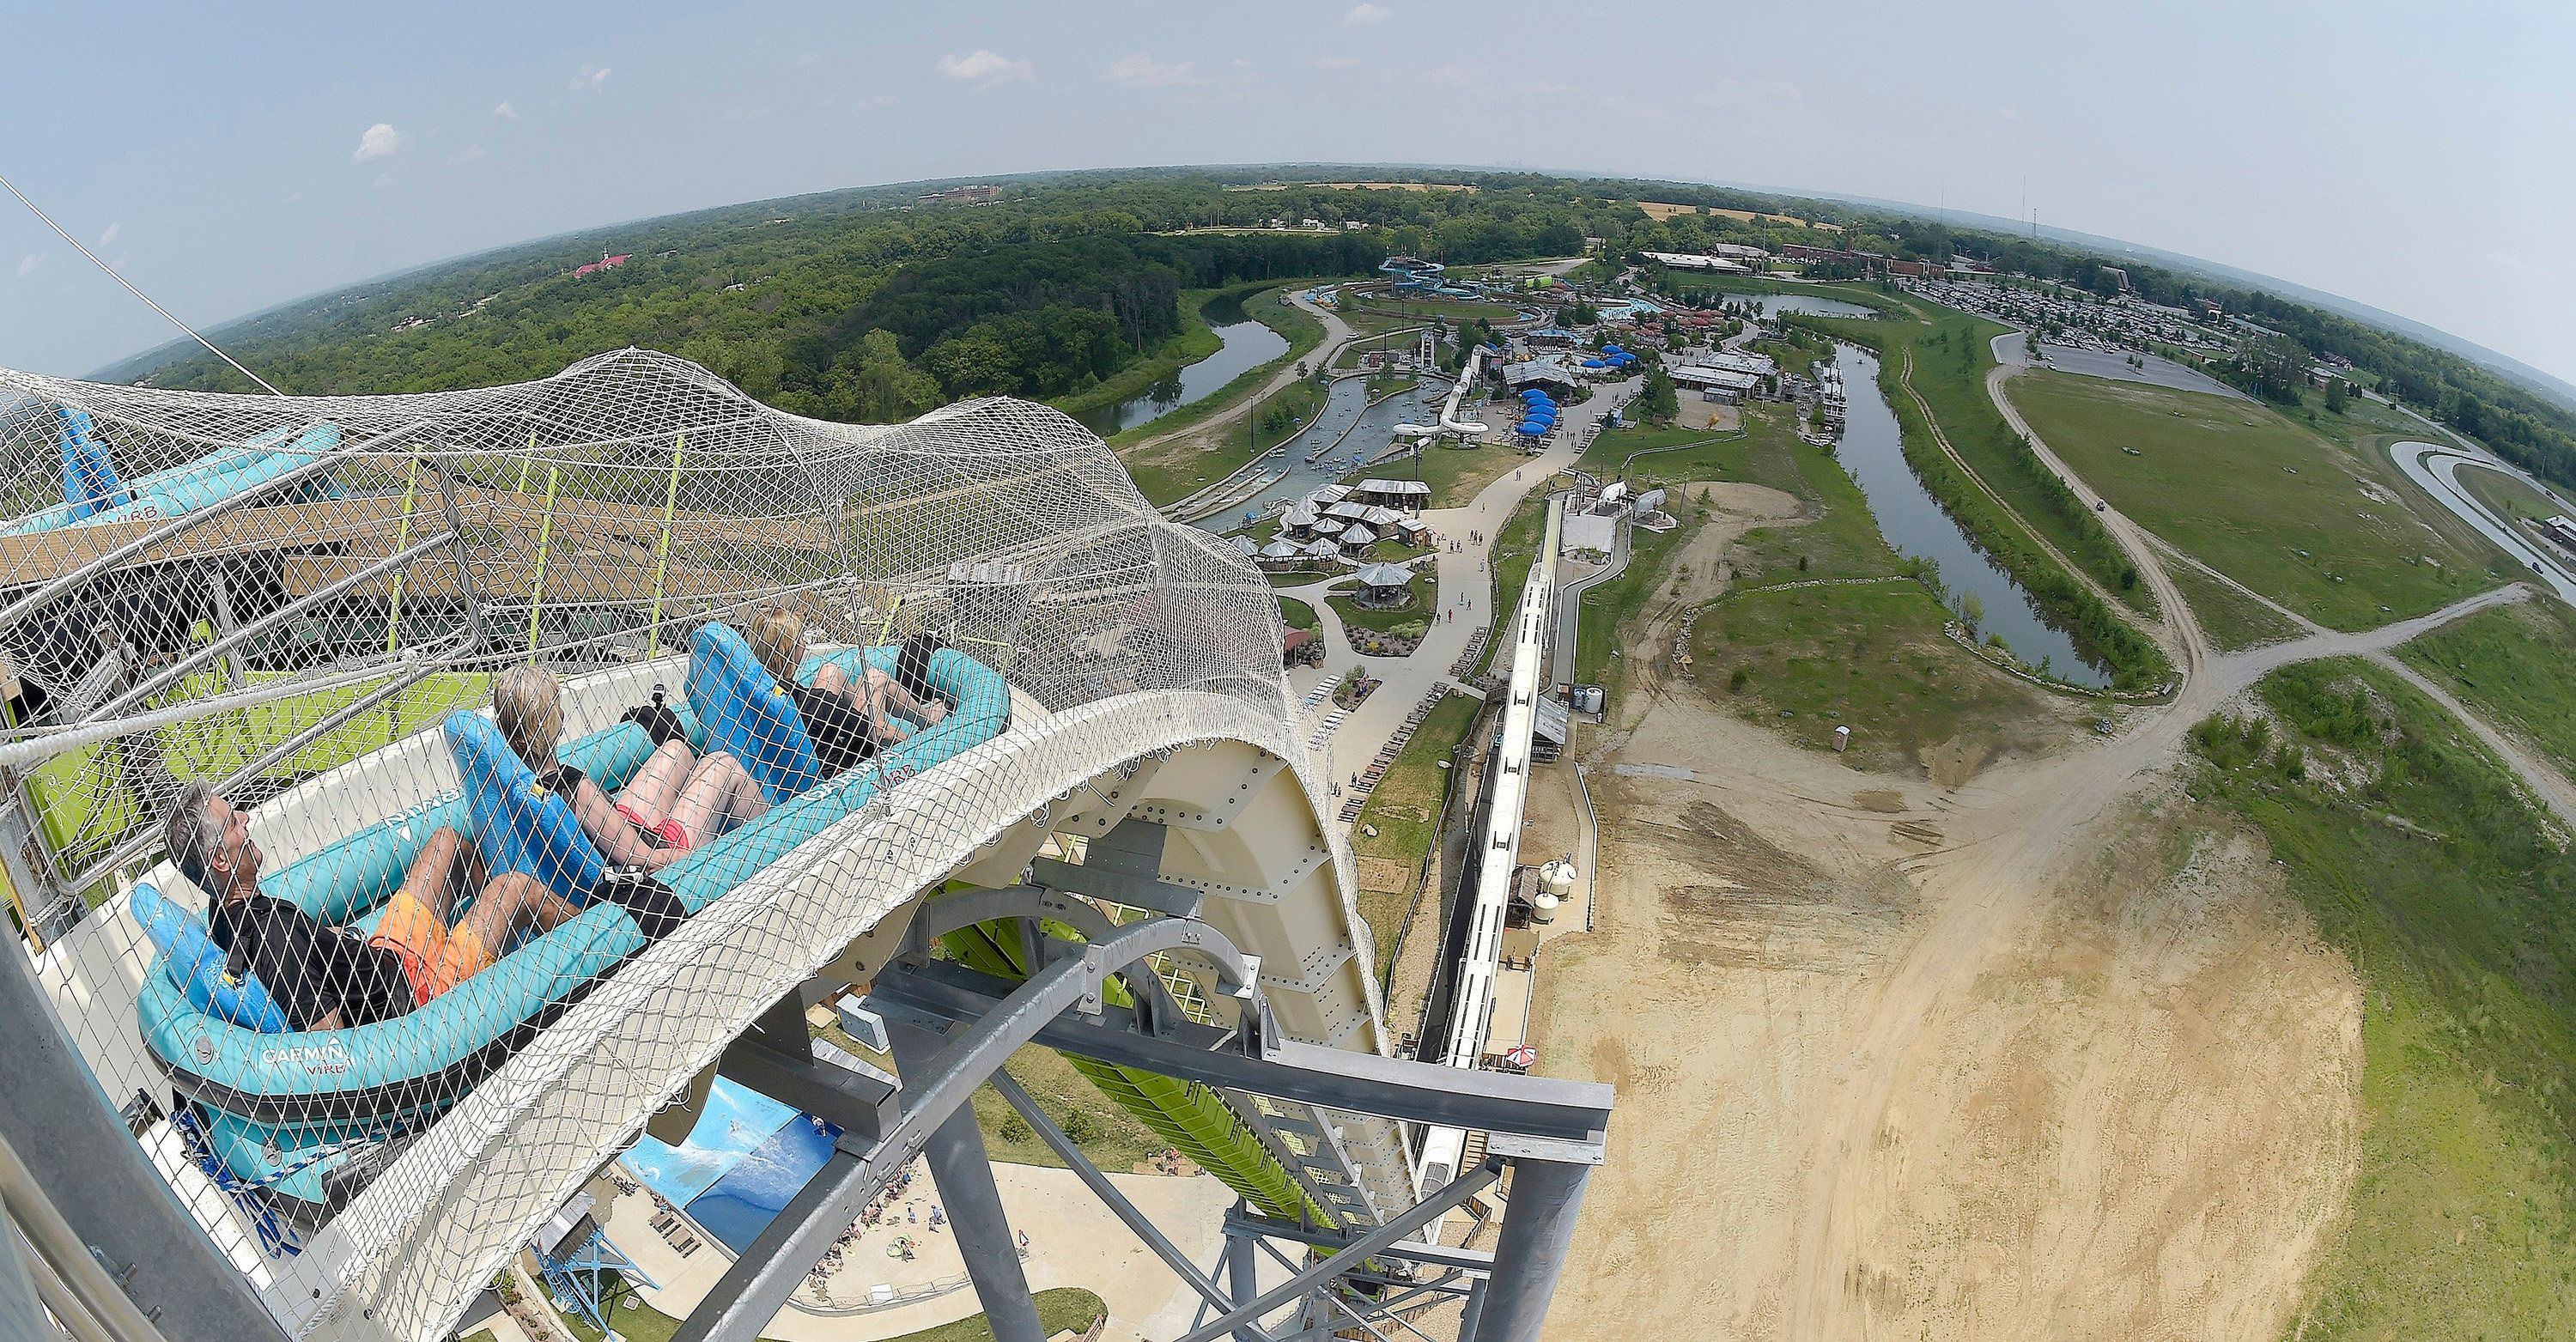 At 168 feet, Verrückt is the tallest water slide in the world.